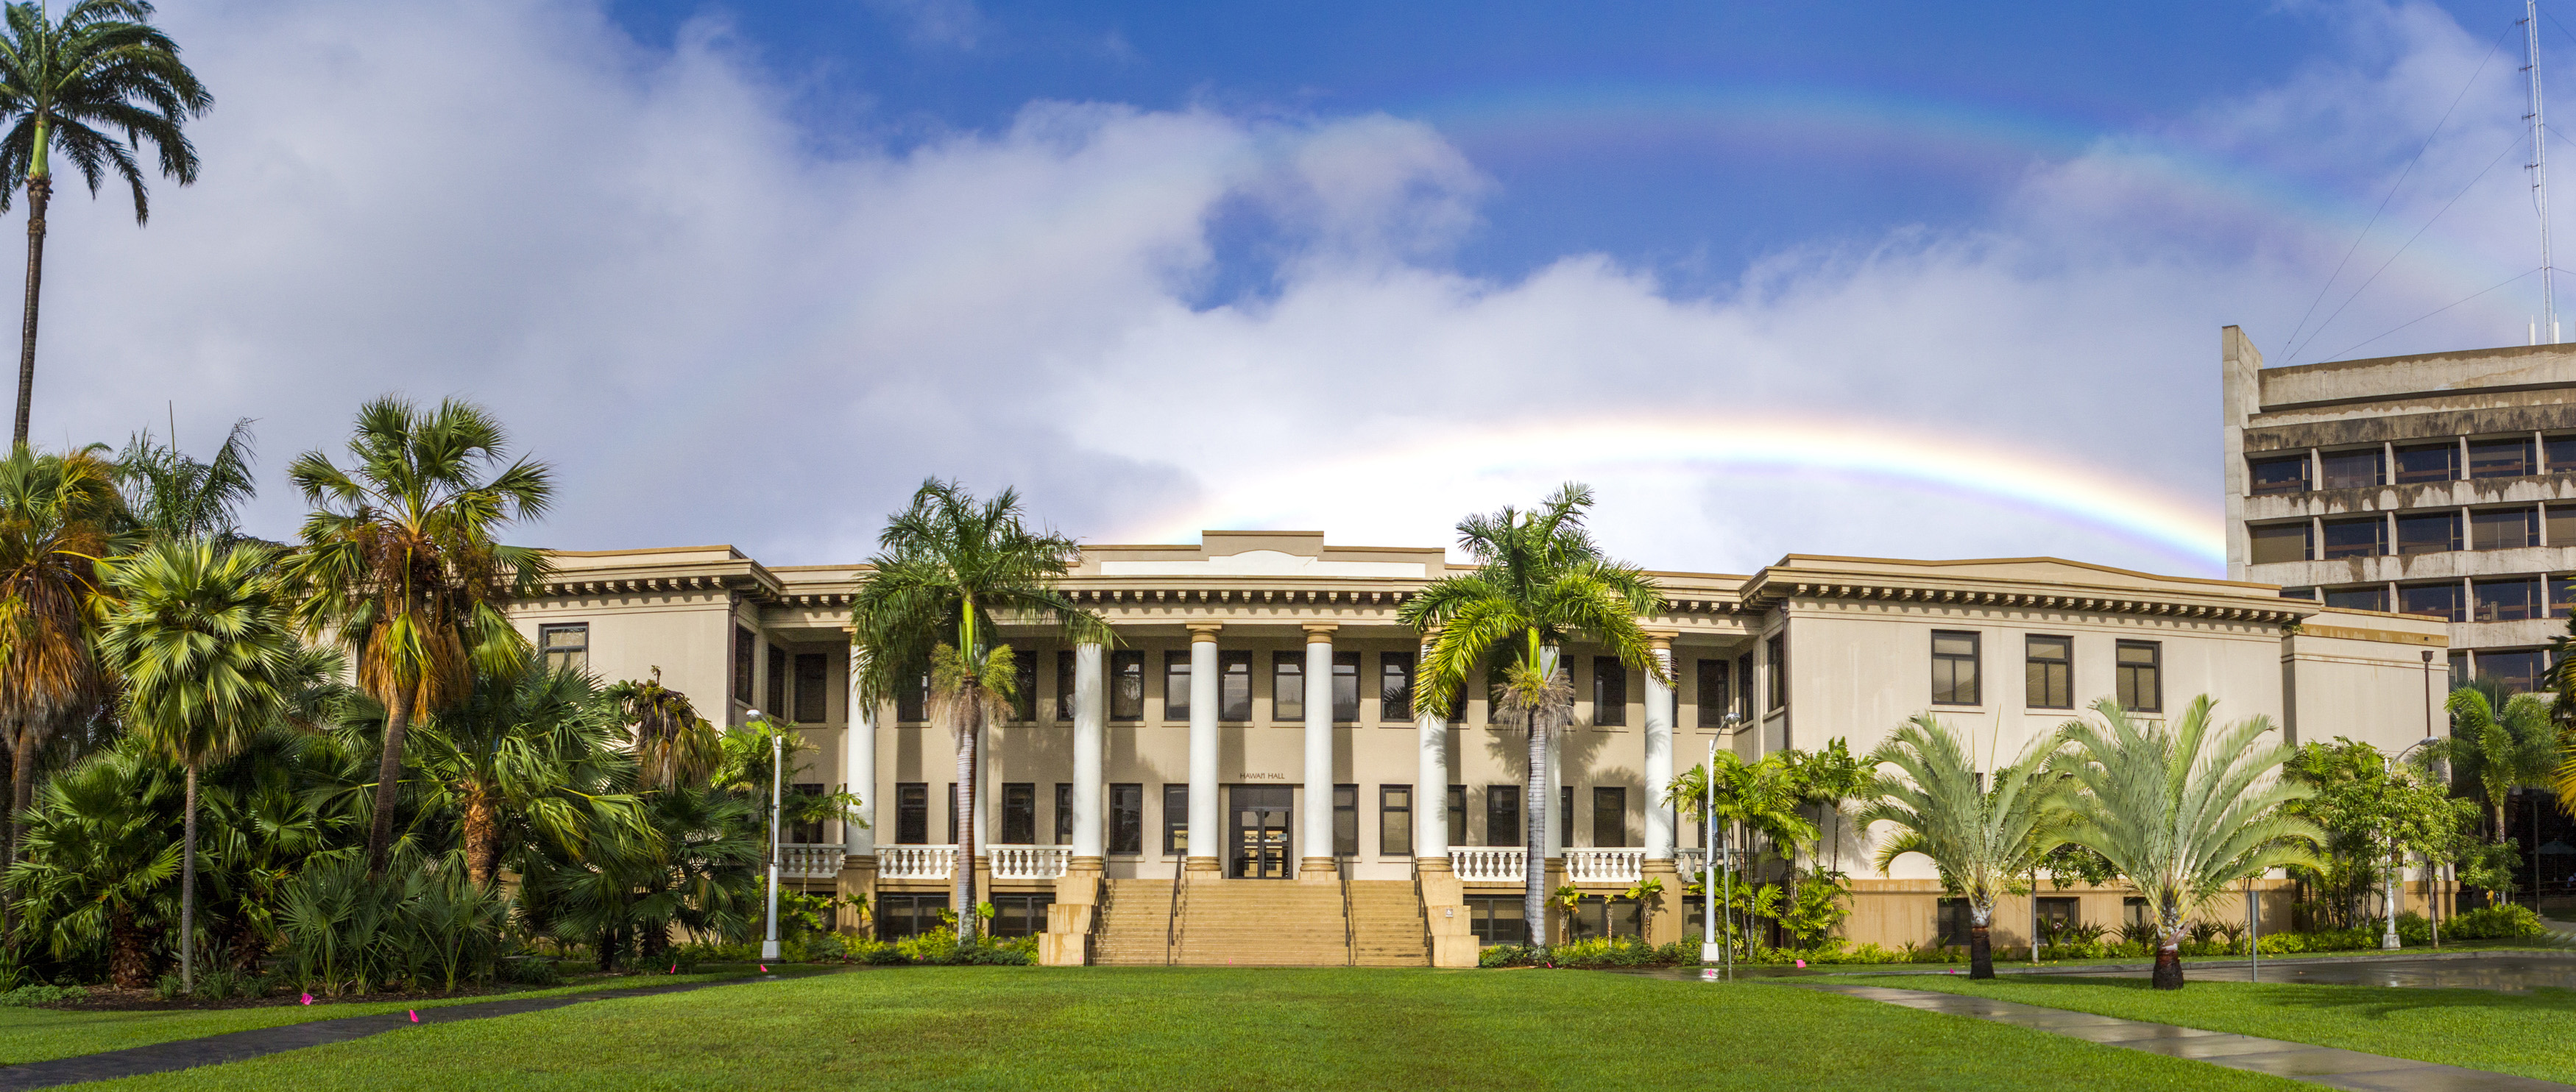 Double rainbow over Hawaii Hall and palm trees